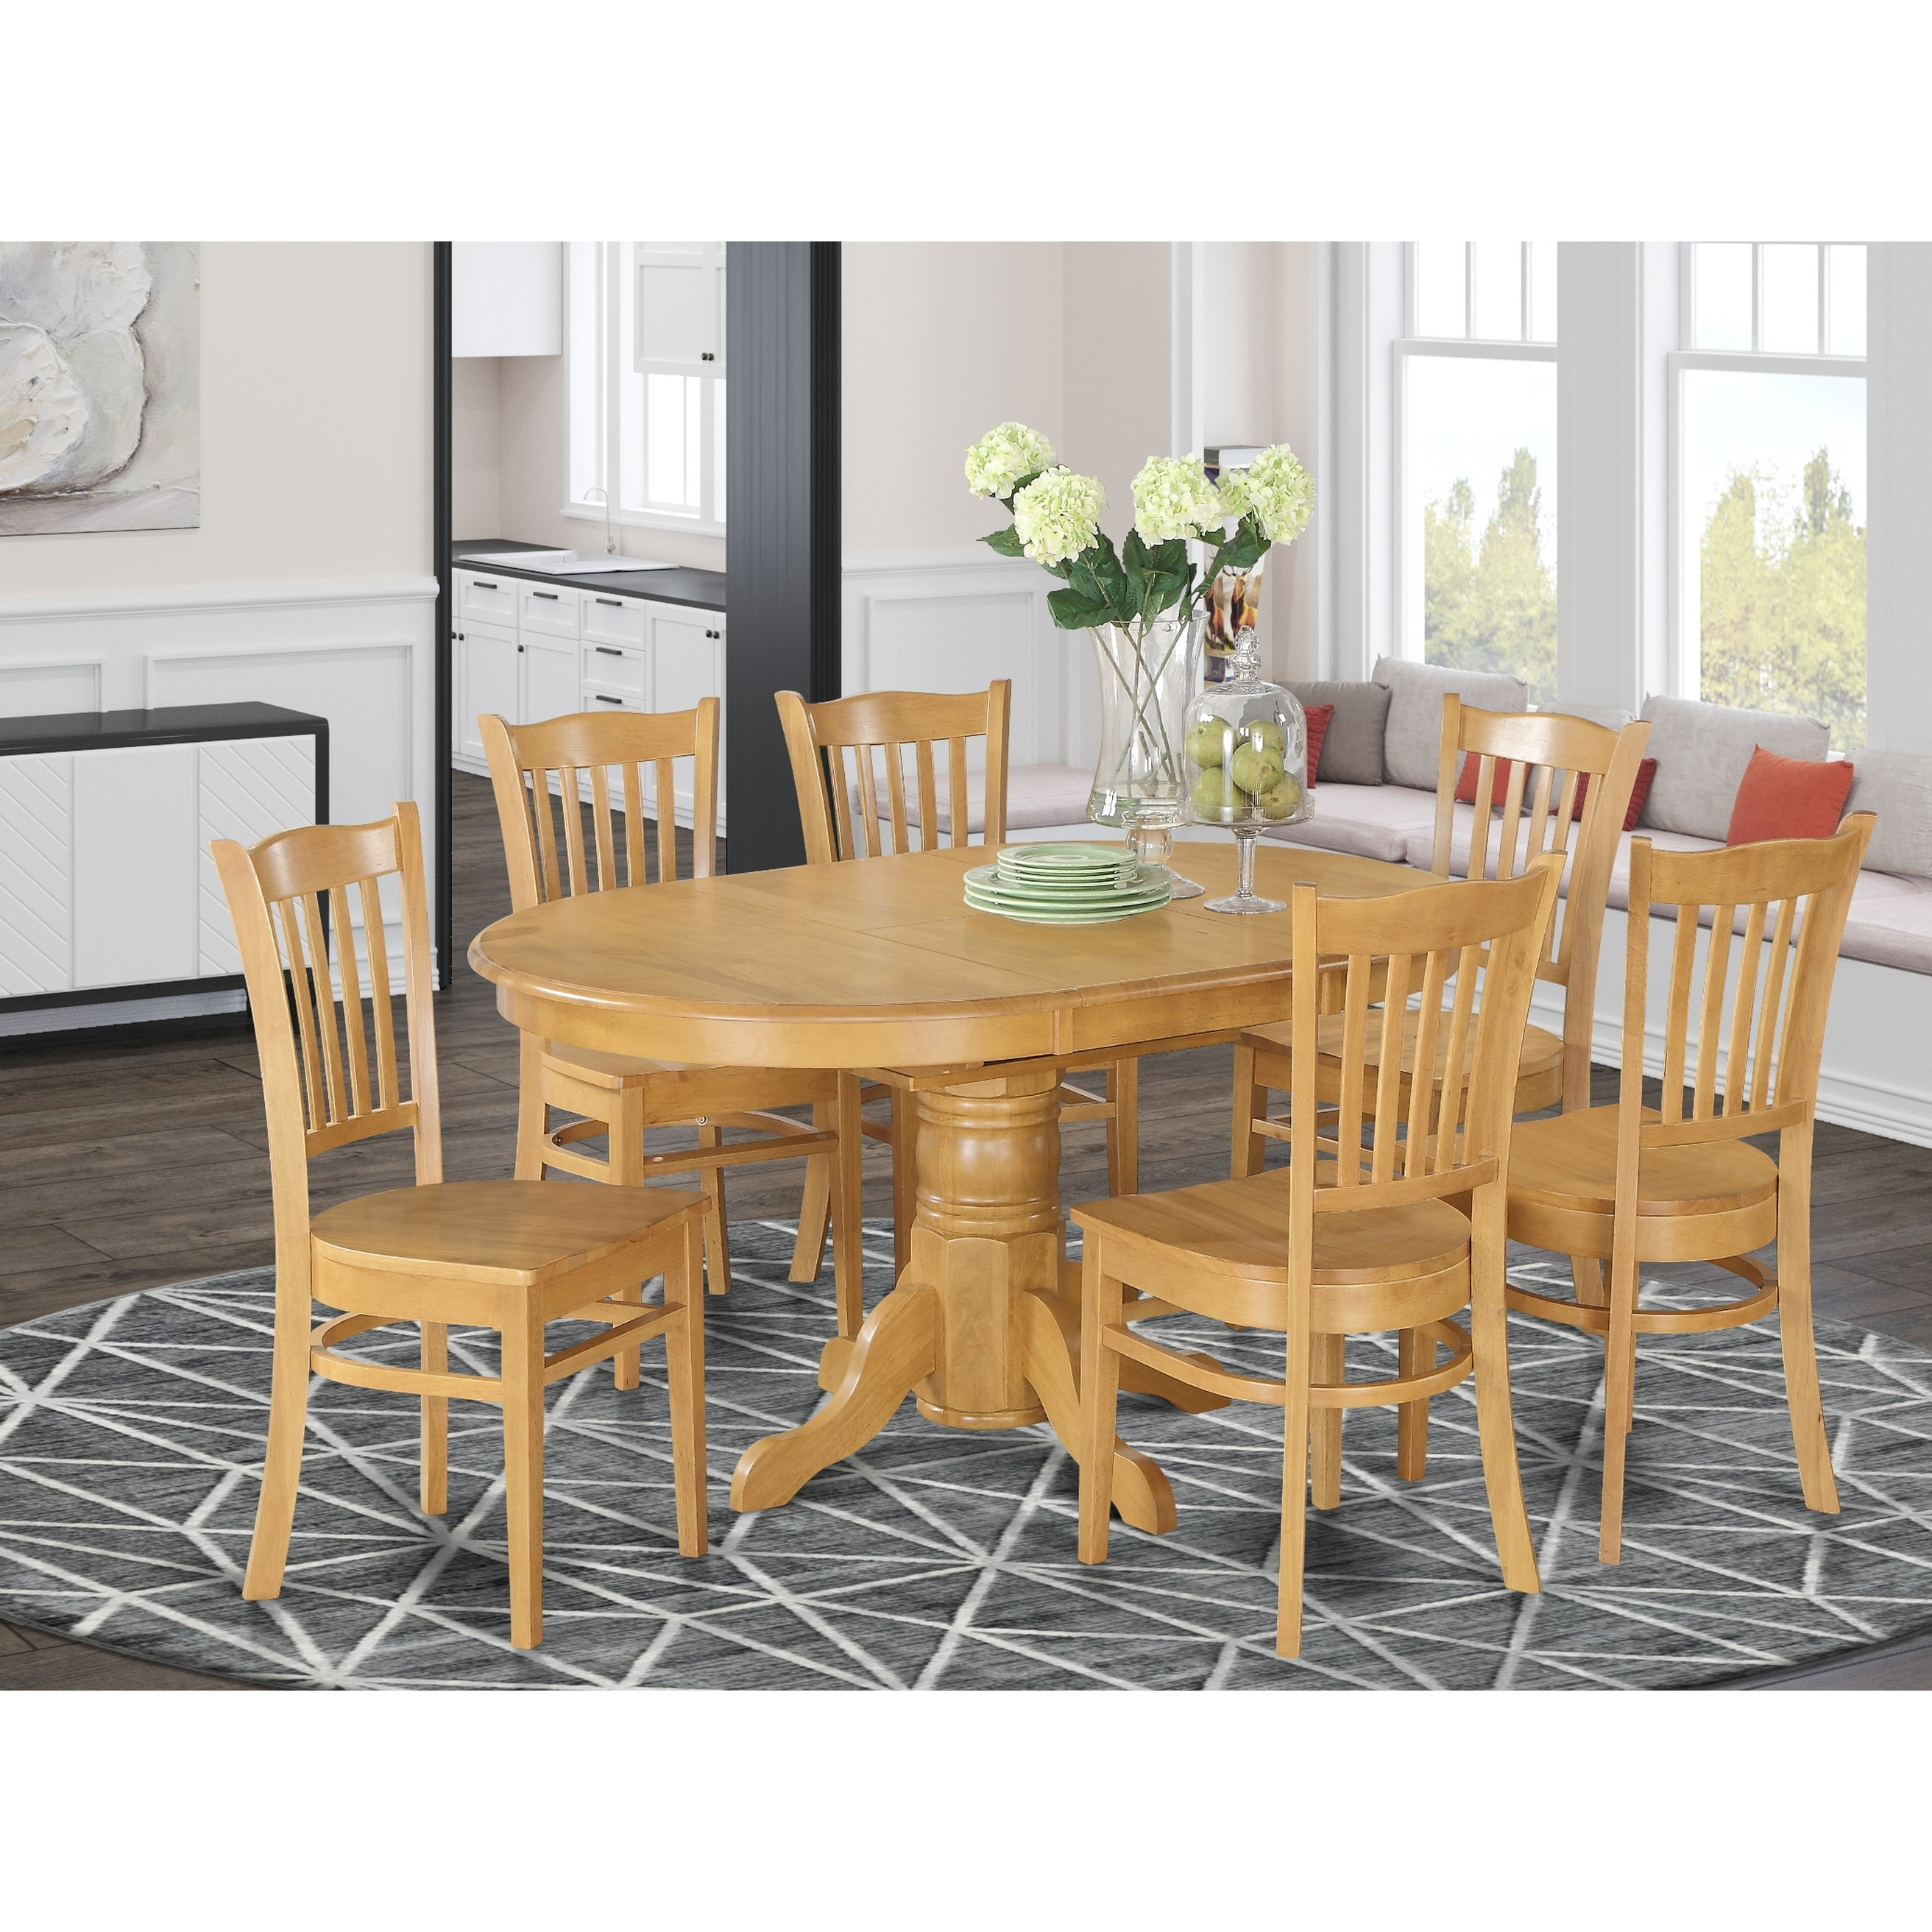 12-piece Formal Oval Dinette Table with Leaf and 12 Dining Chairs - Oak